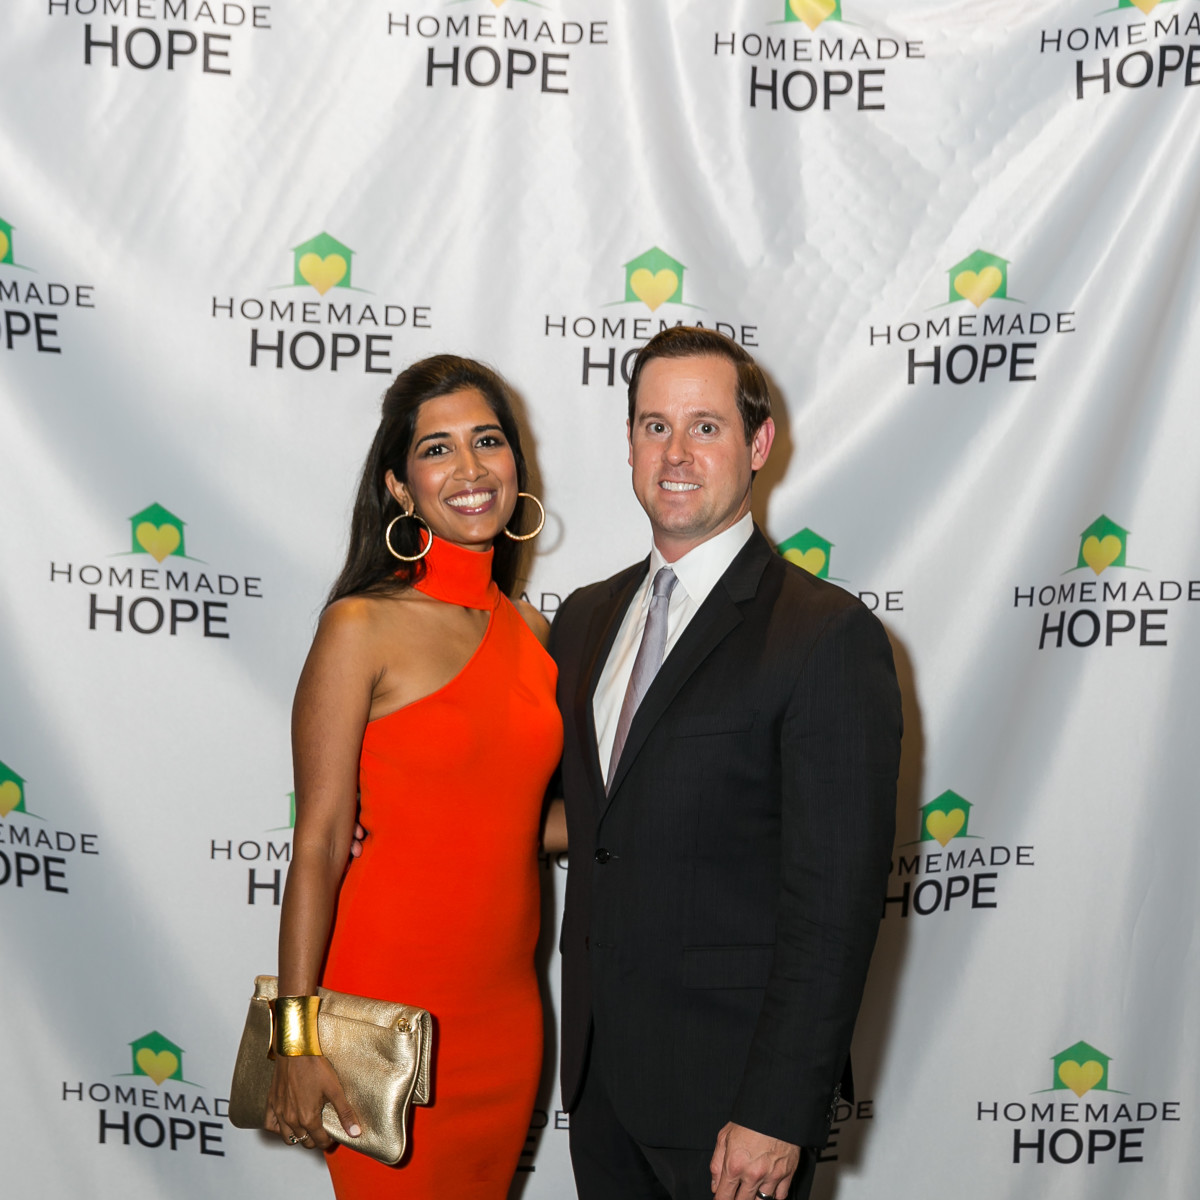 Homemade Hope Gala Divya Chris Brown